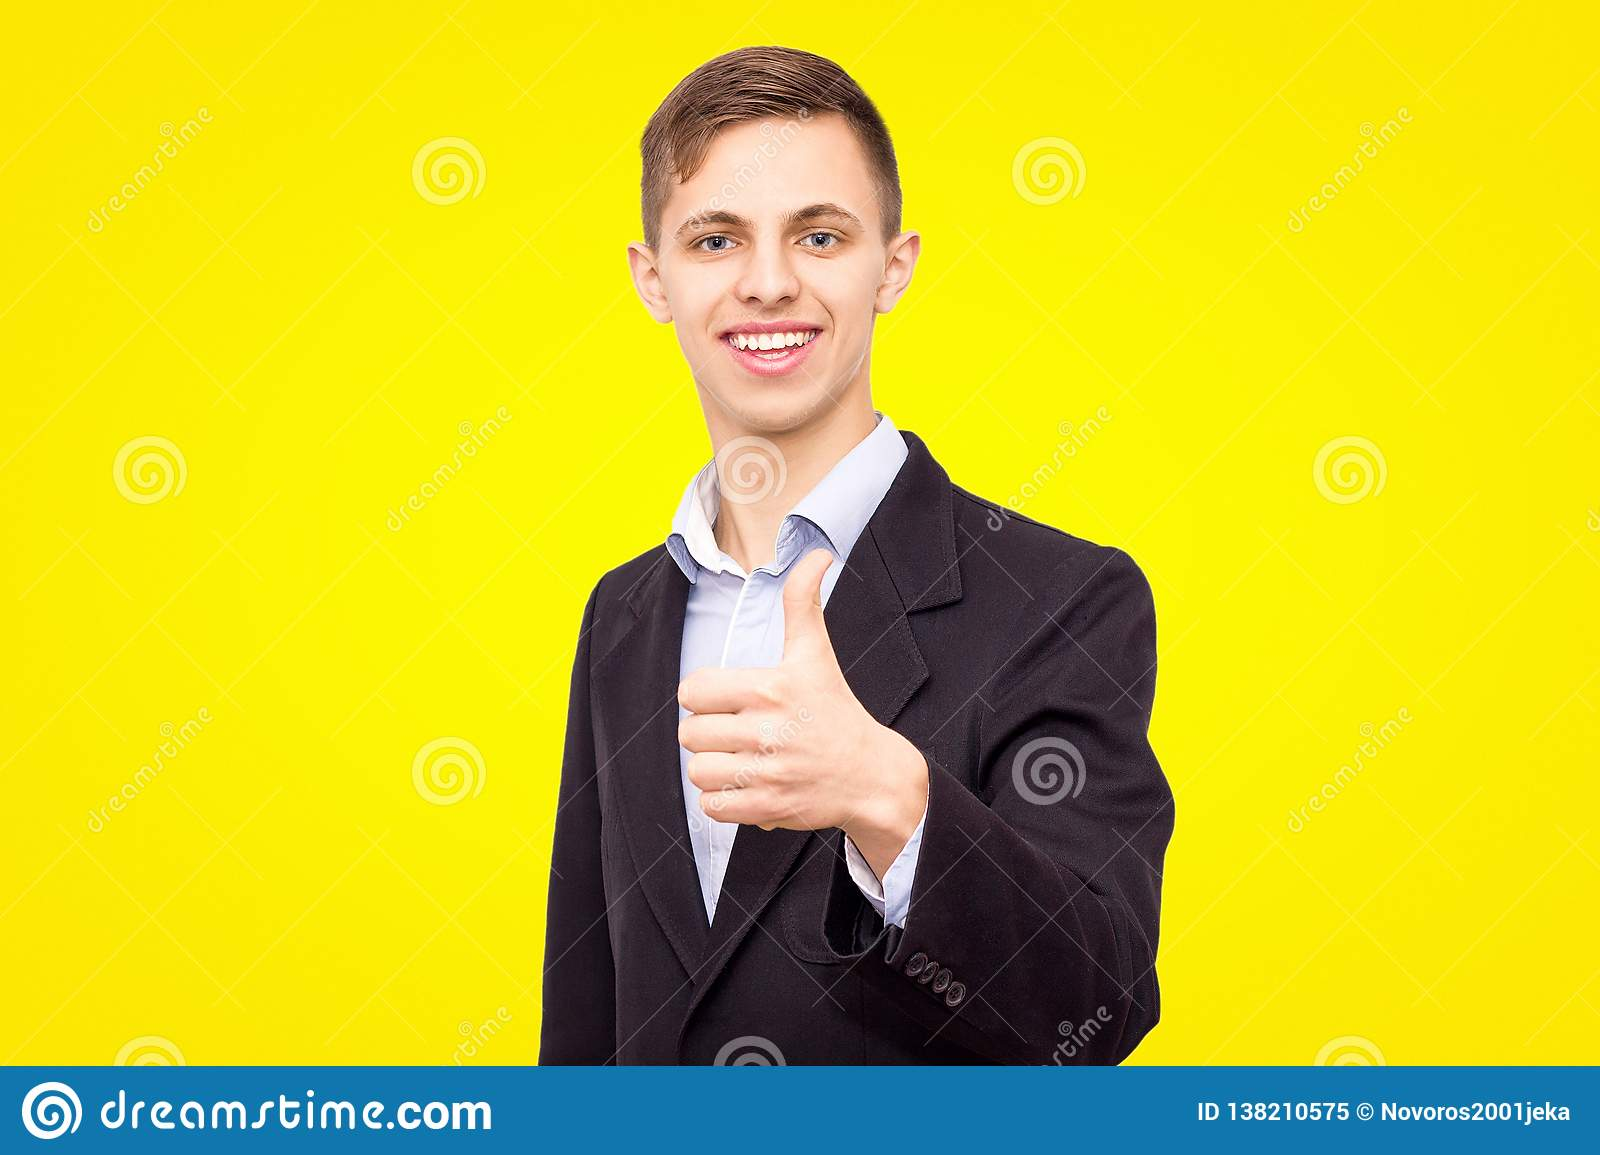 Guy in a jacket and blue shirt shows a finger up isolated on a yellow background